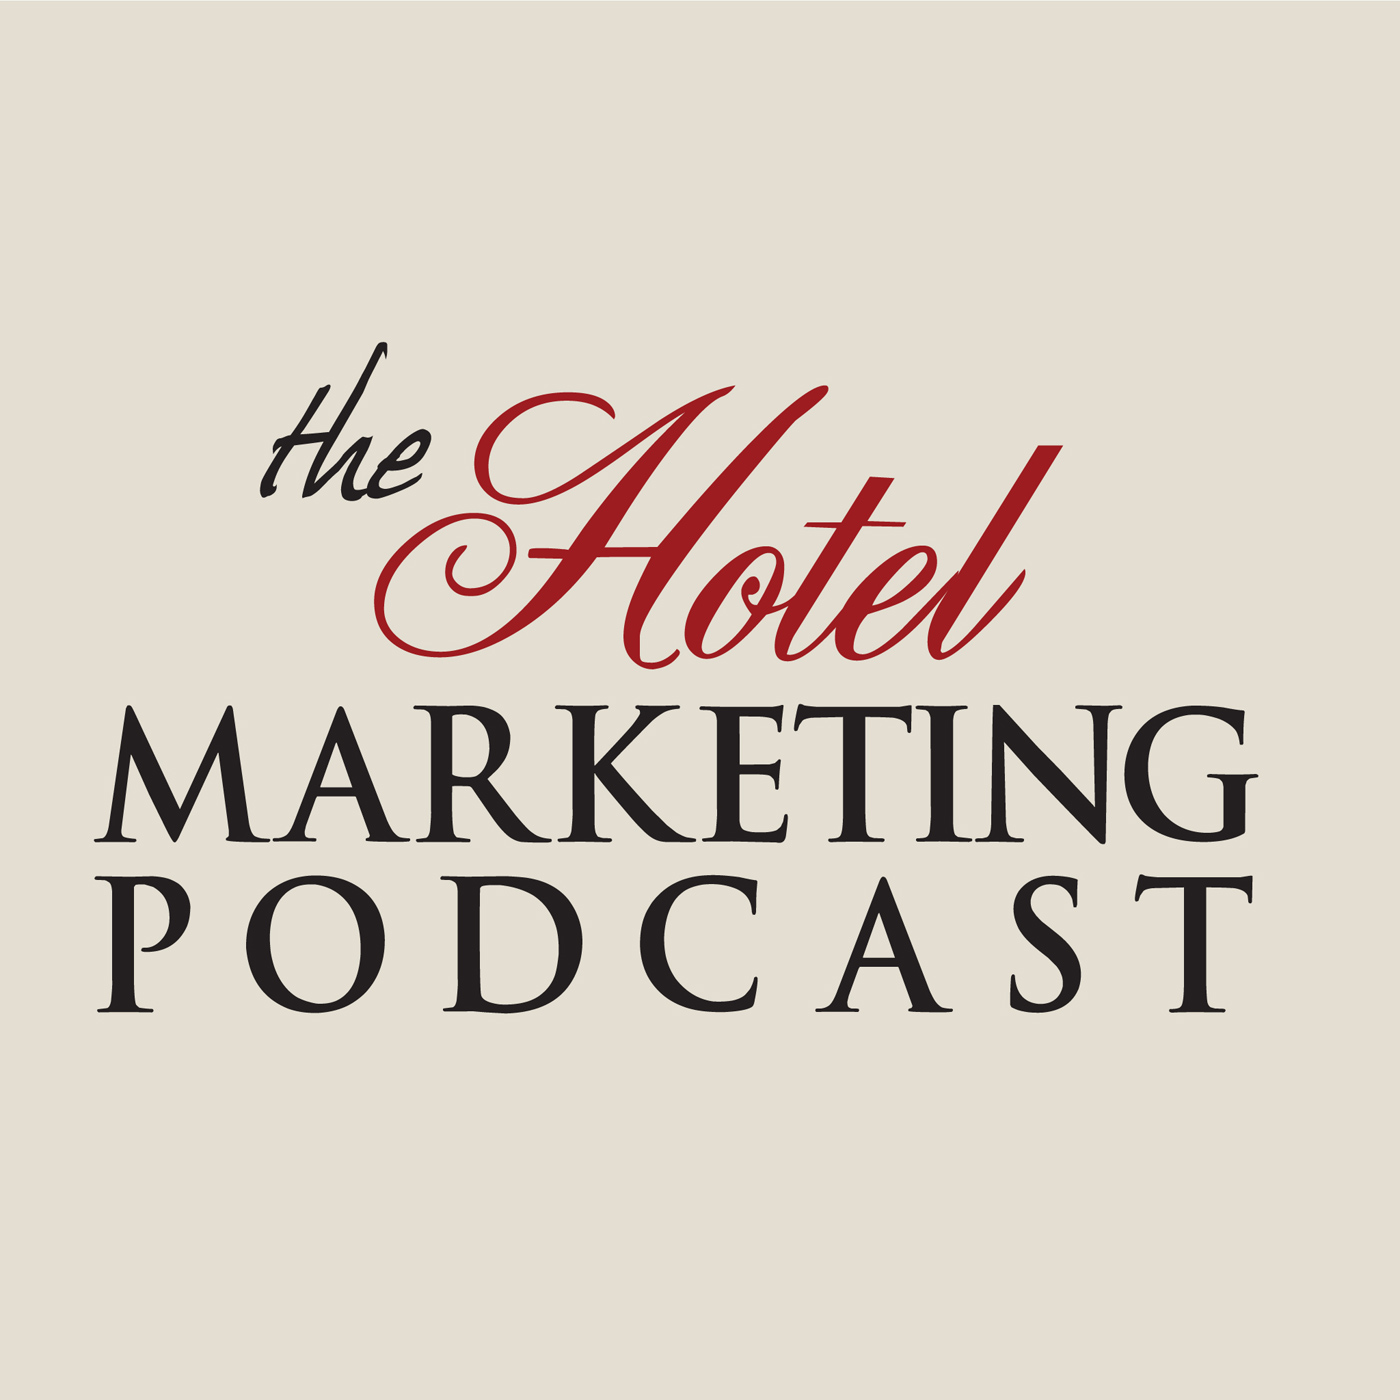 The Hotel Marketing Podcast